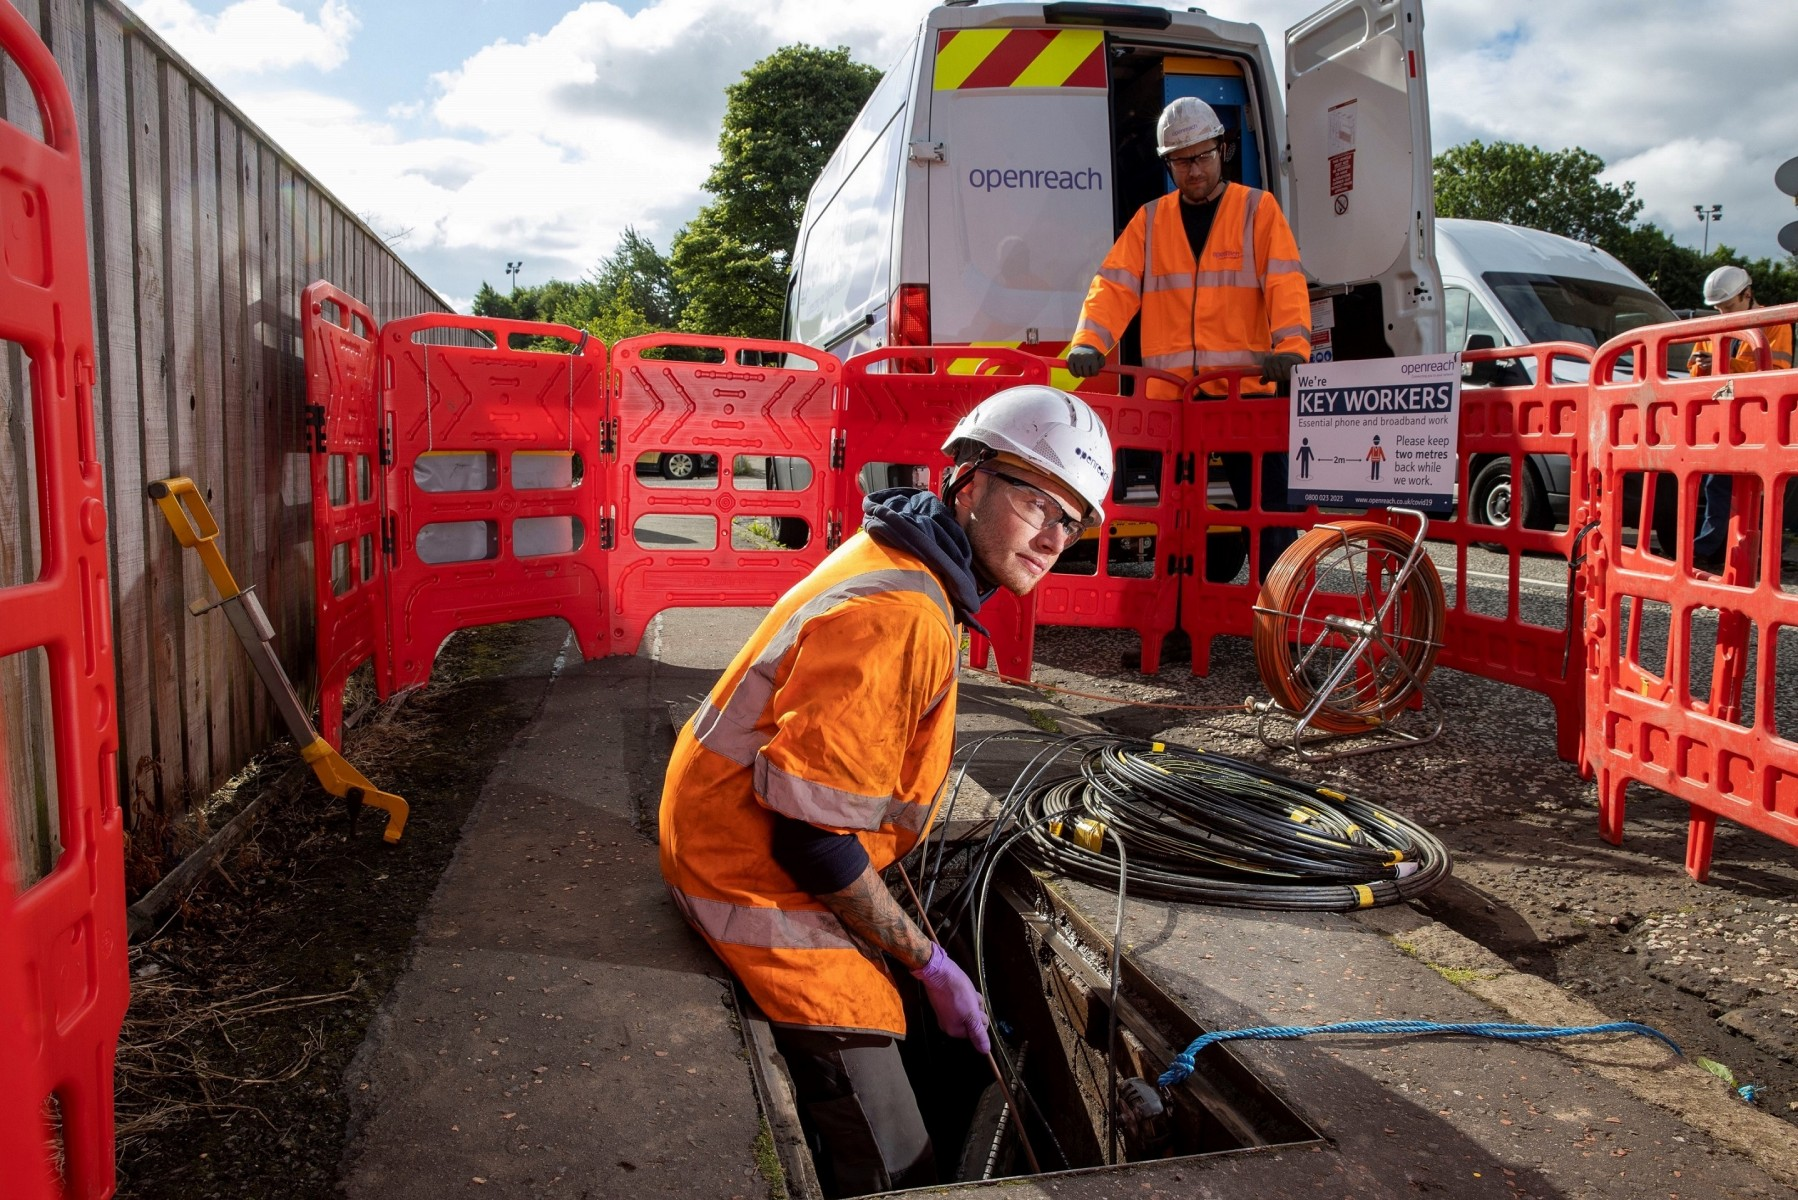 Engineers work on full fibre cable